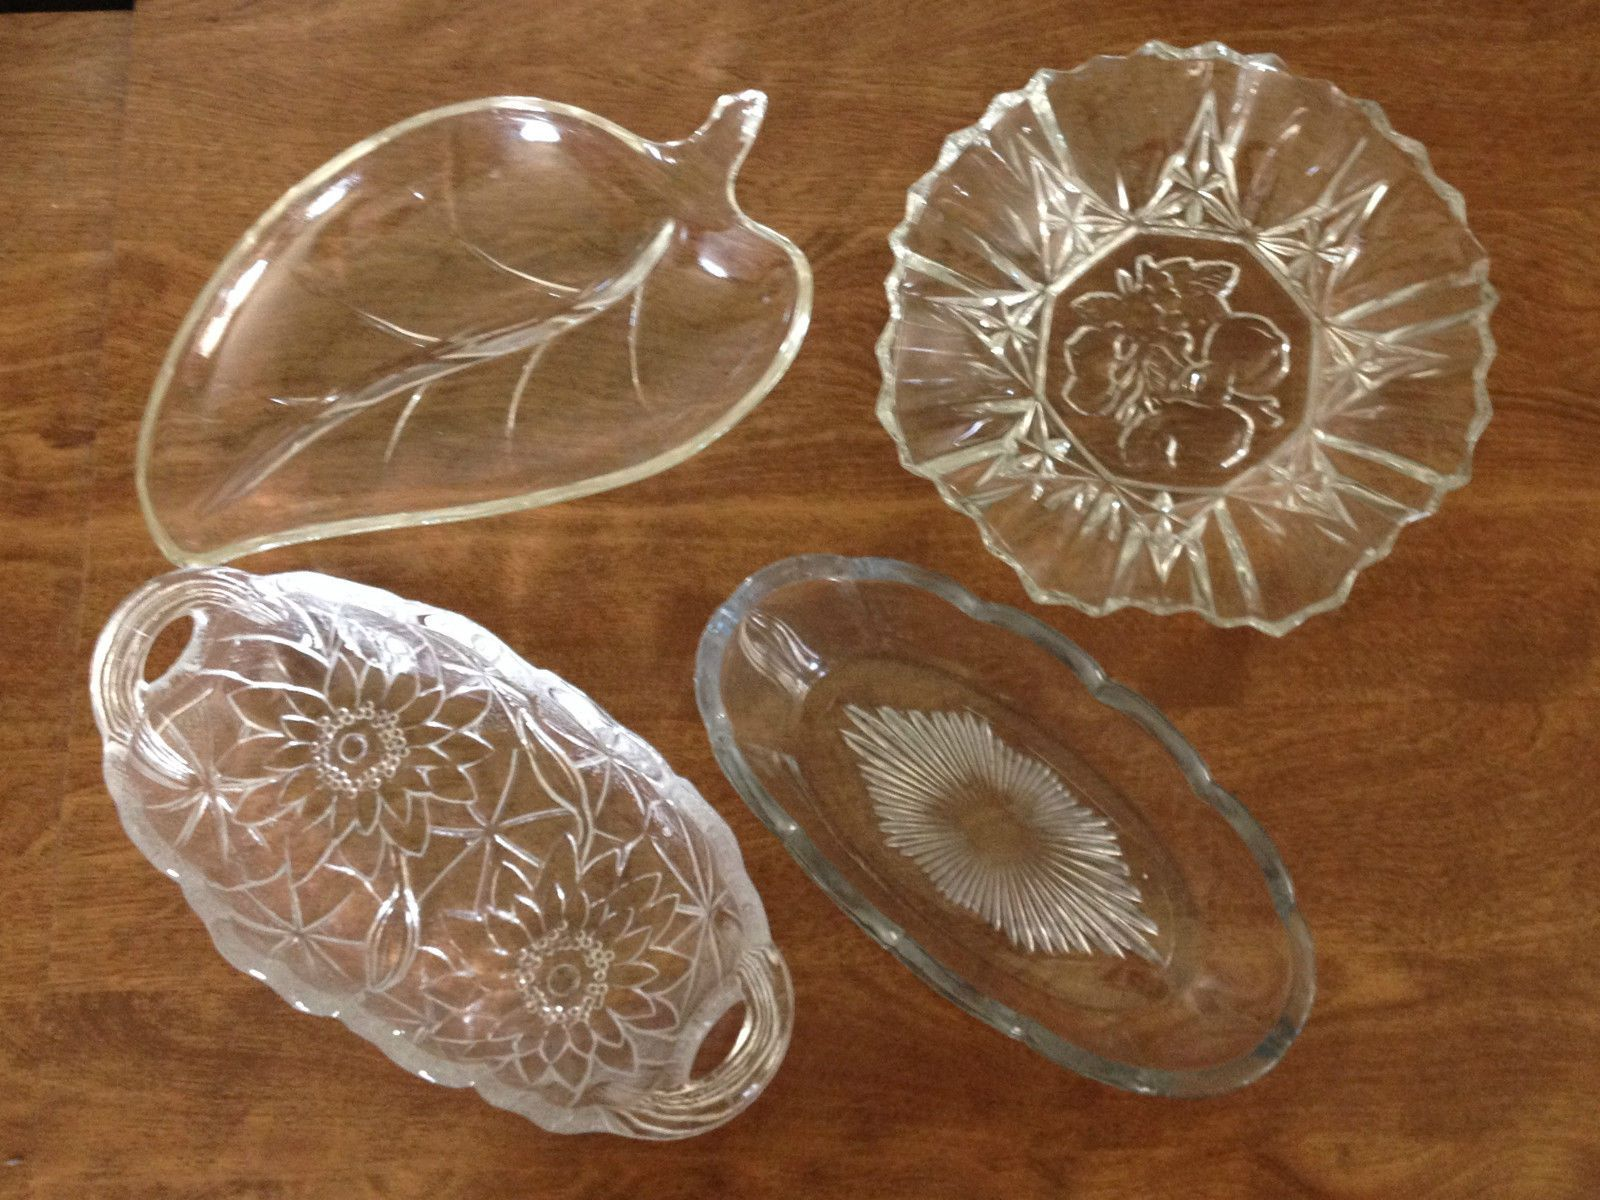 Lot of 4 Clear Glass Serving Dishes Oval w/Flowers 1 Oval w/Star 1 Round 1 Leaf  picclick.com